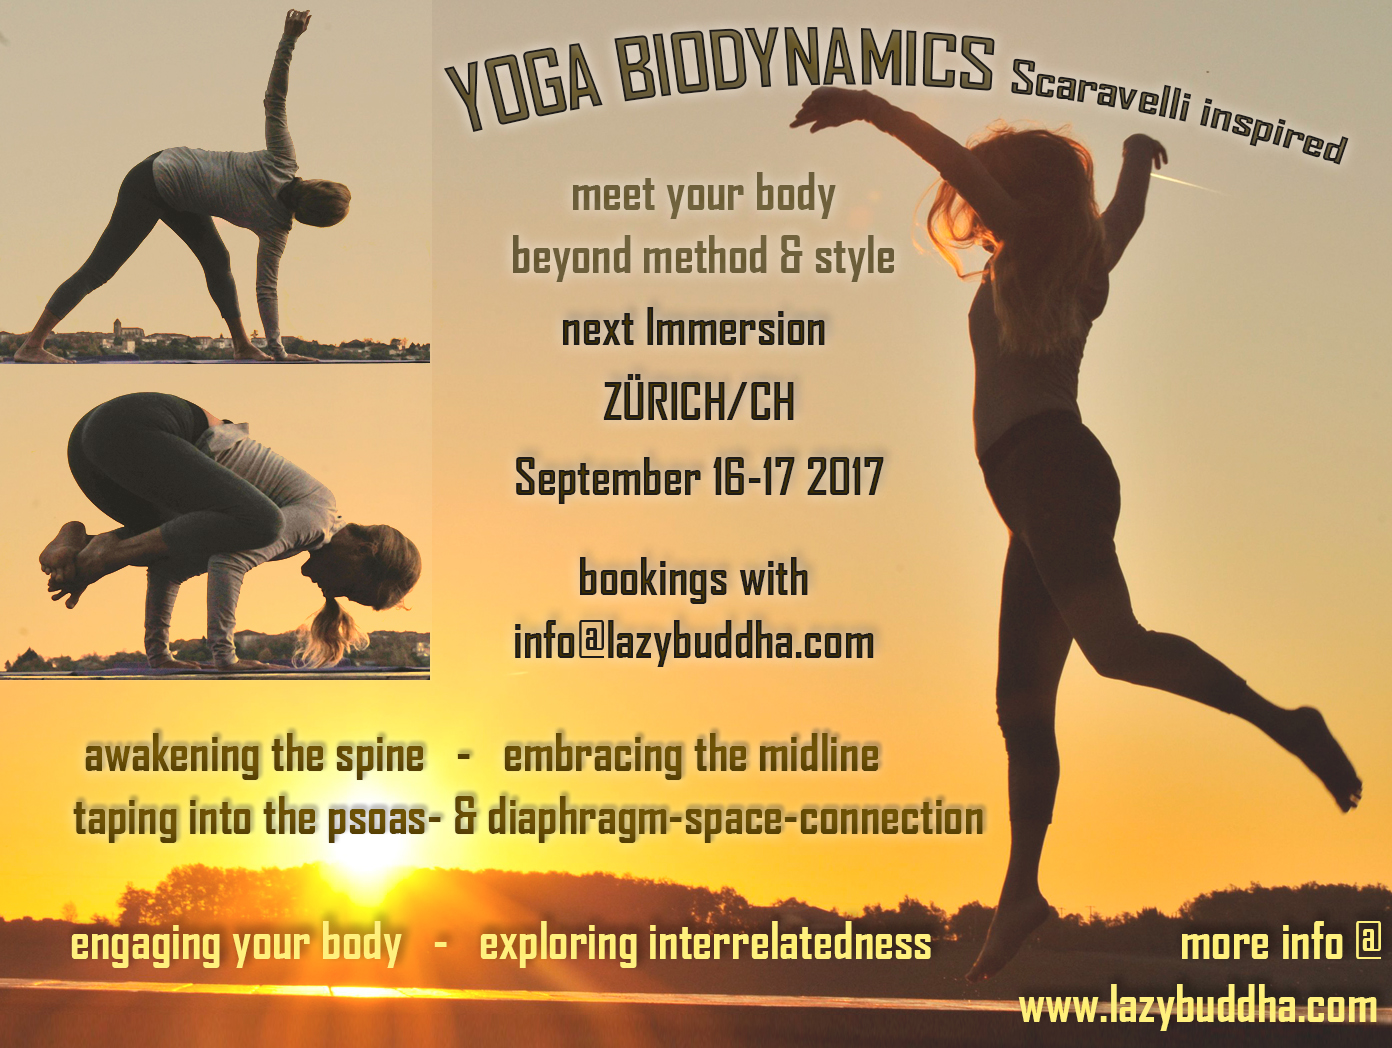 yoga sept 2017 zürich